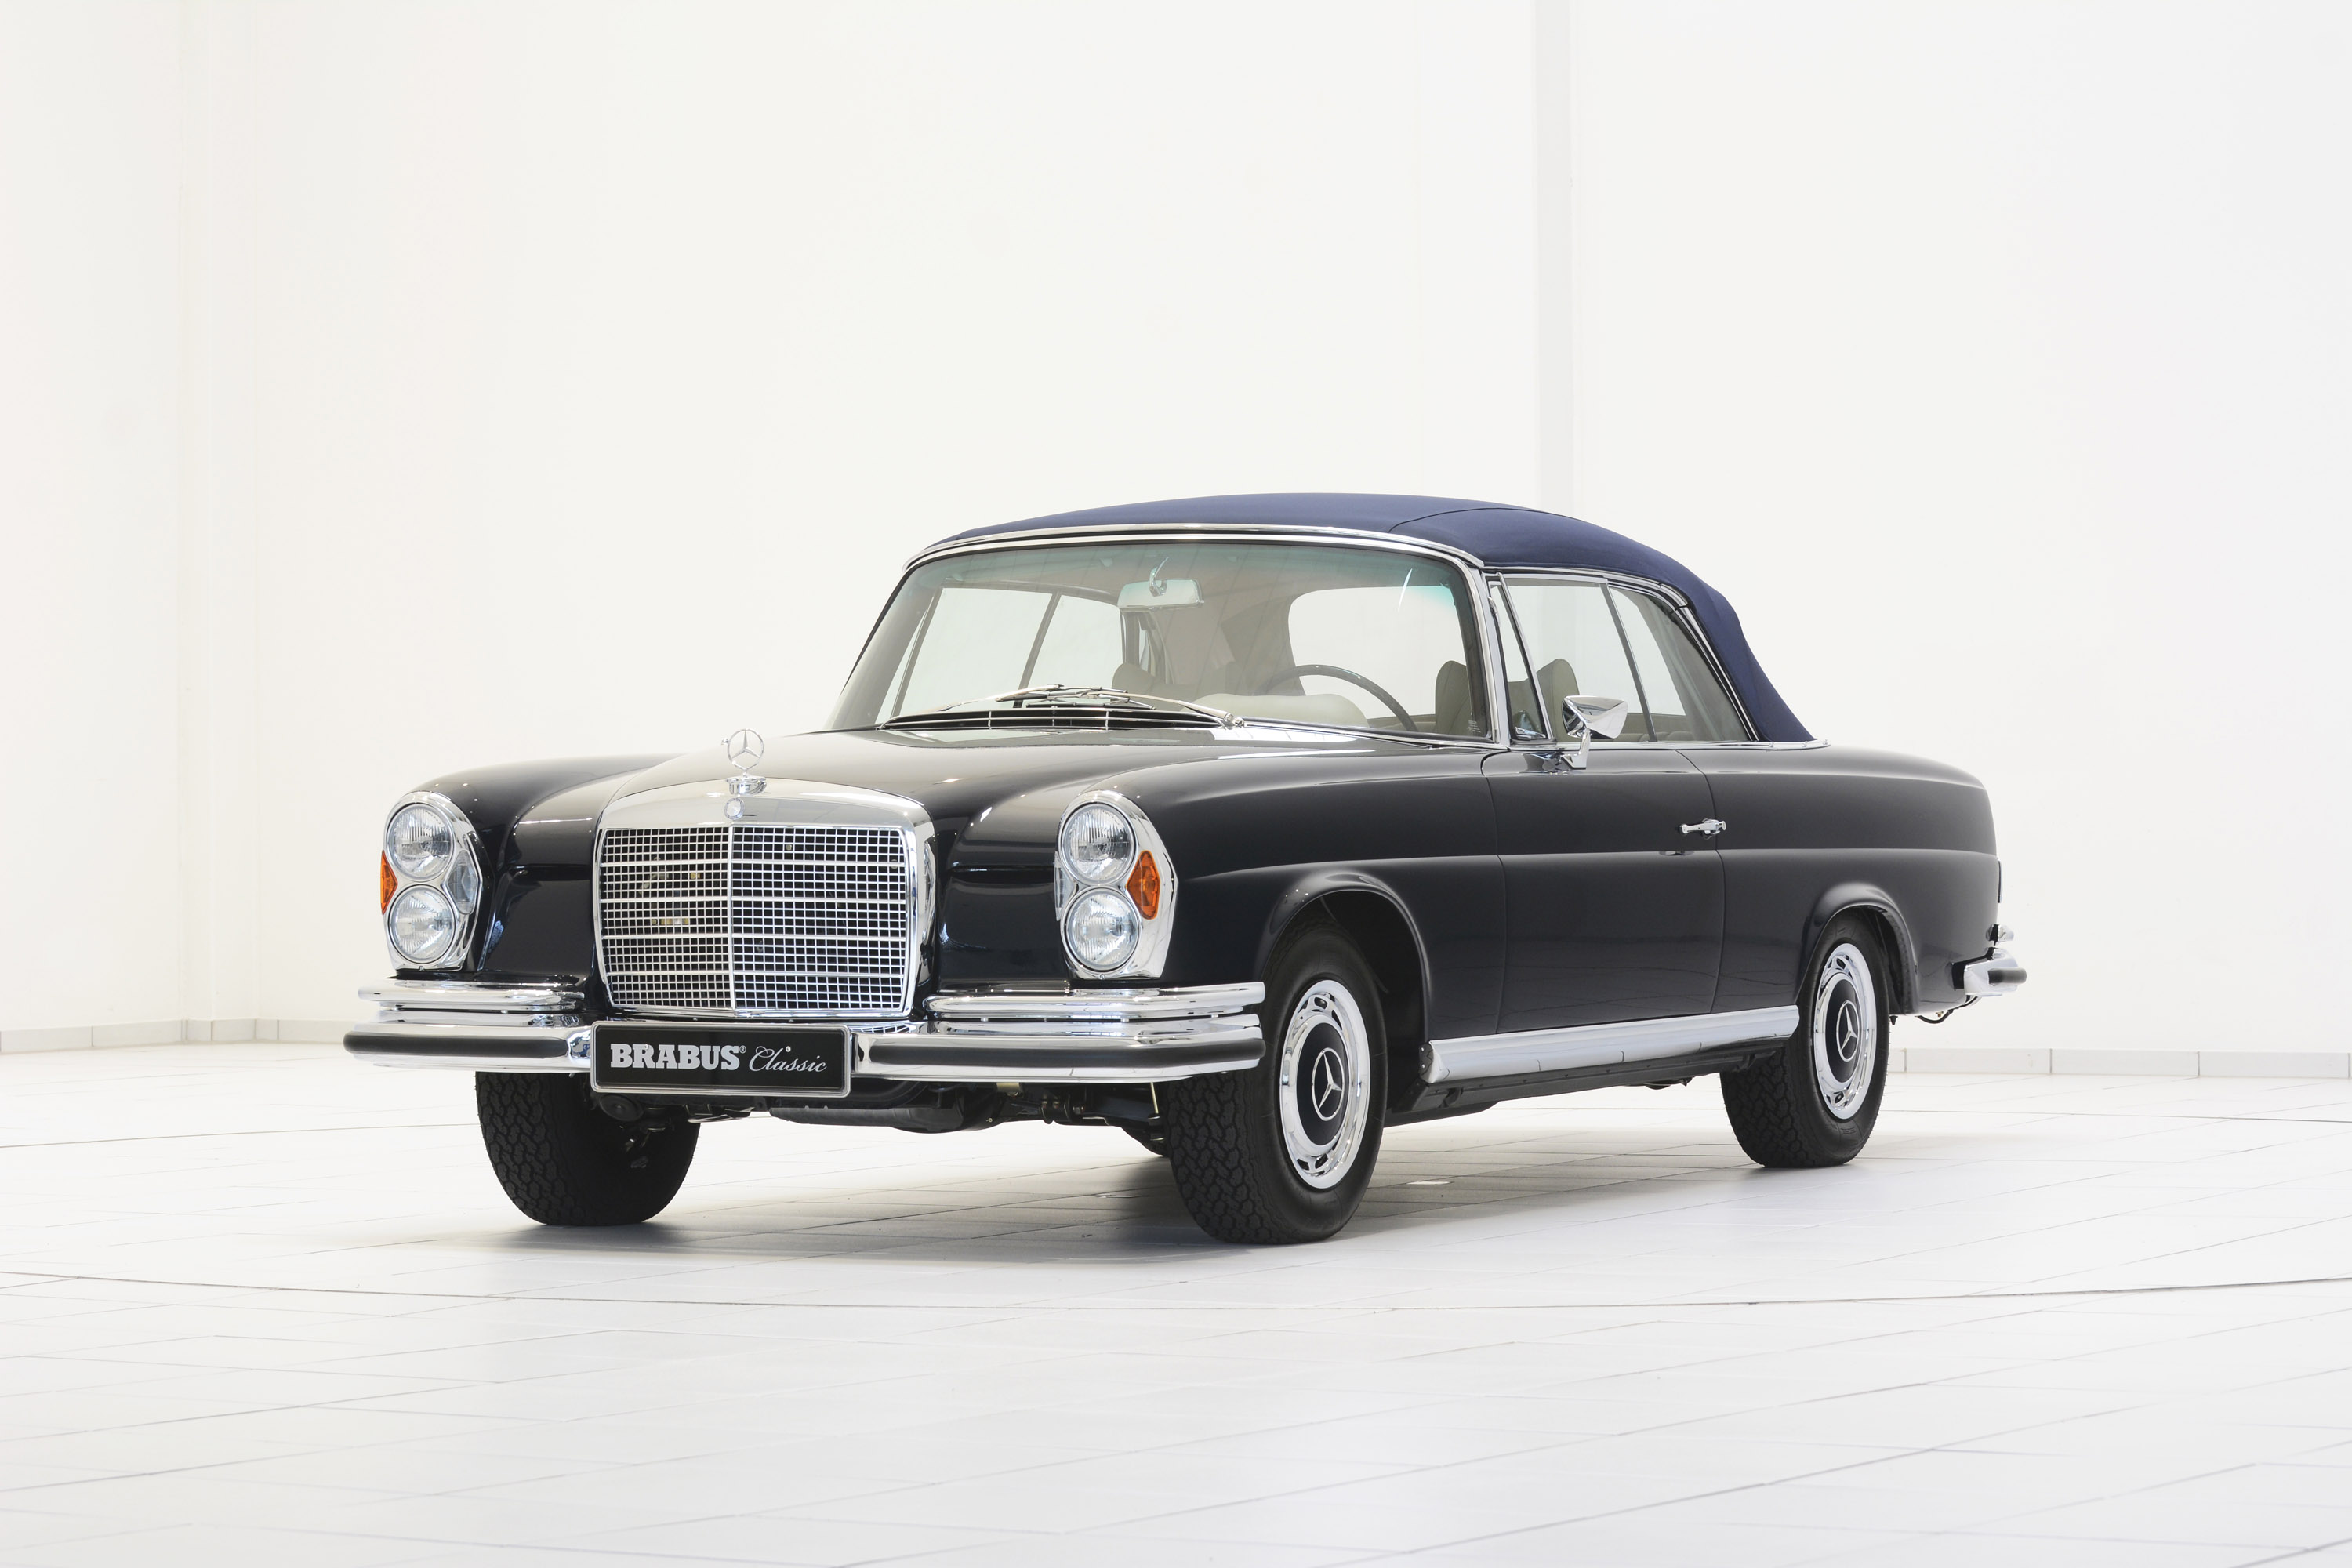 Brabus classic mercedes benz 280 se 3 5 cabriolet w111 for Old mercedes benz models